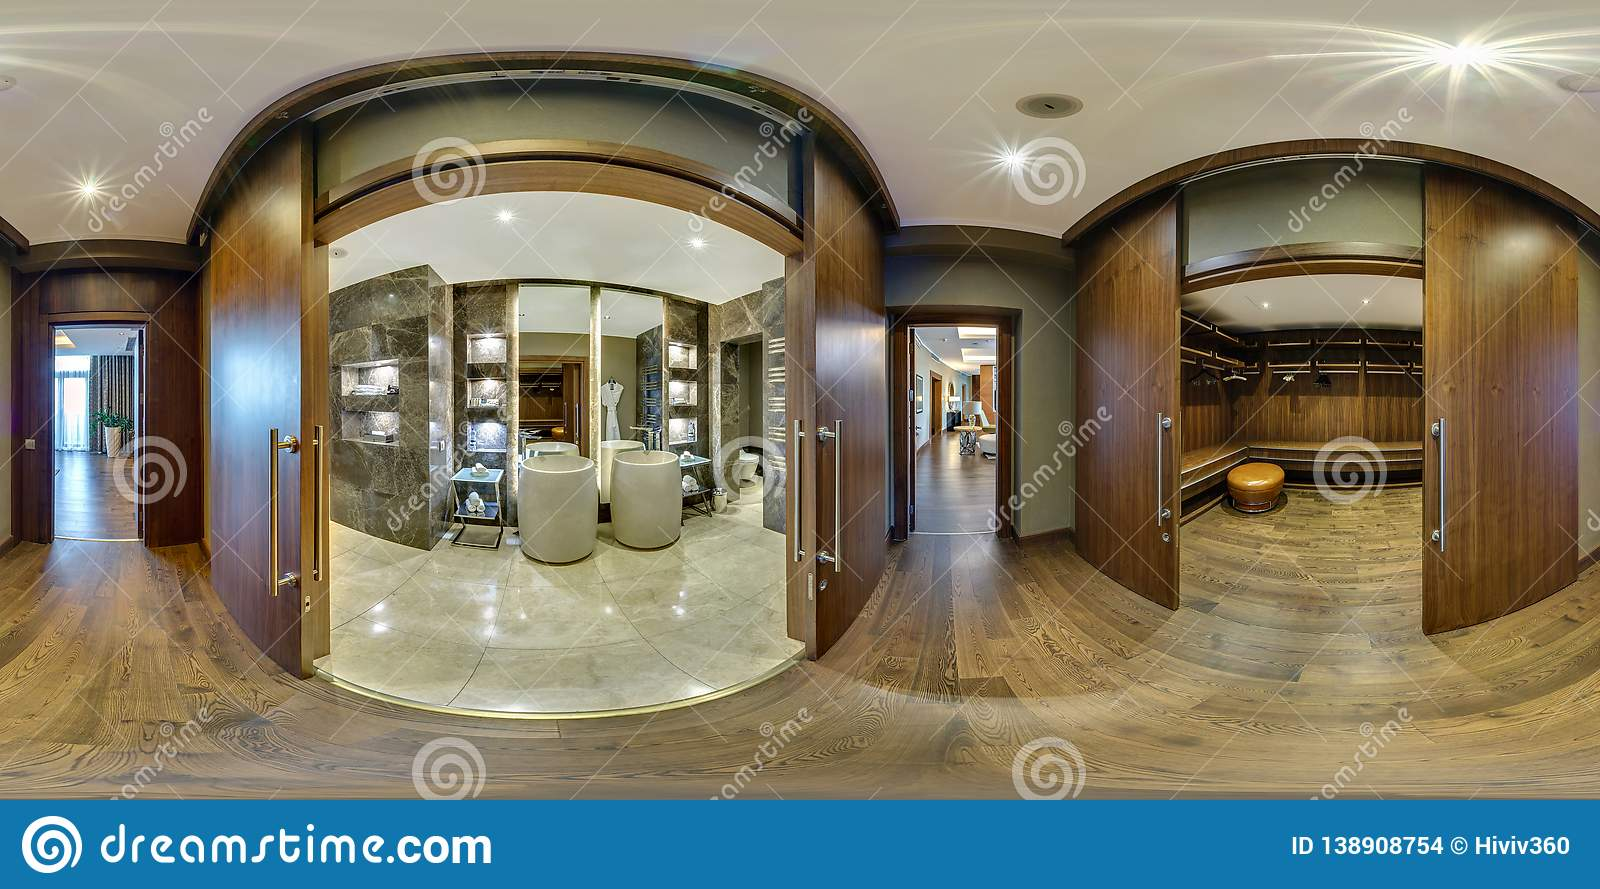 MINSK, BELARUS - AUGUST 2017: full seamless panorama 360 angle view in elite vip bathroom and wardrobe in loft hotel. Spherical